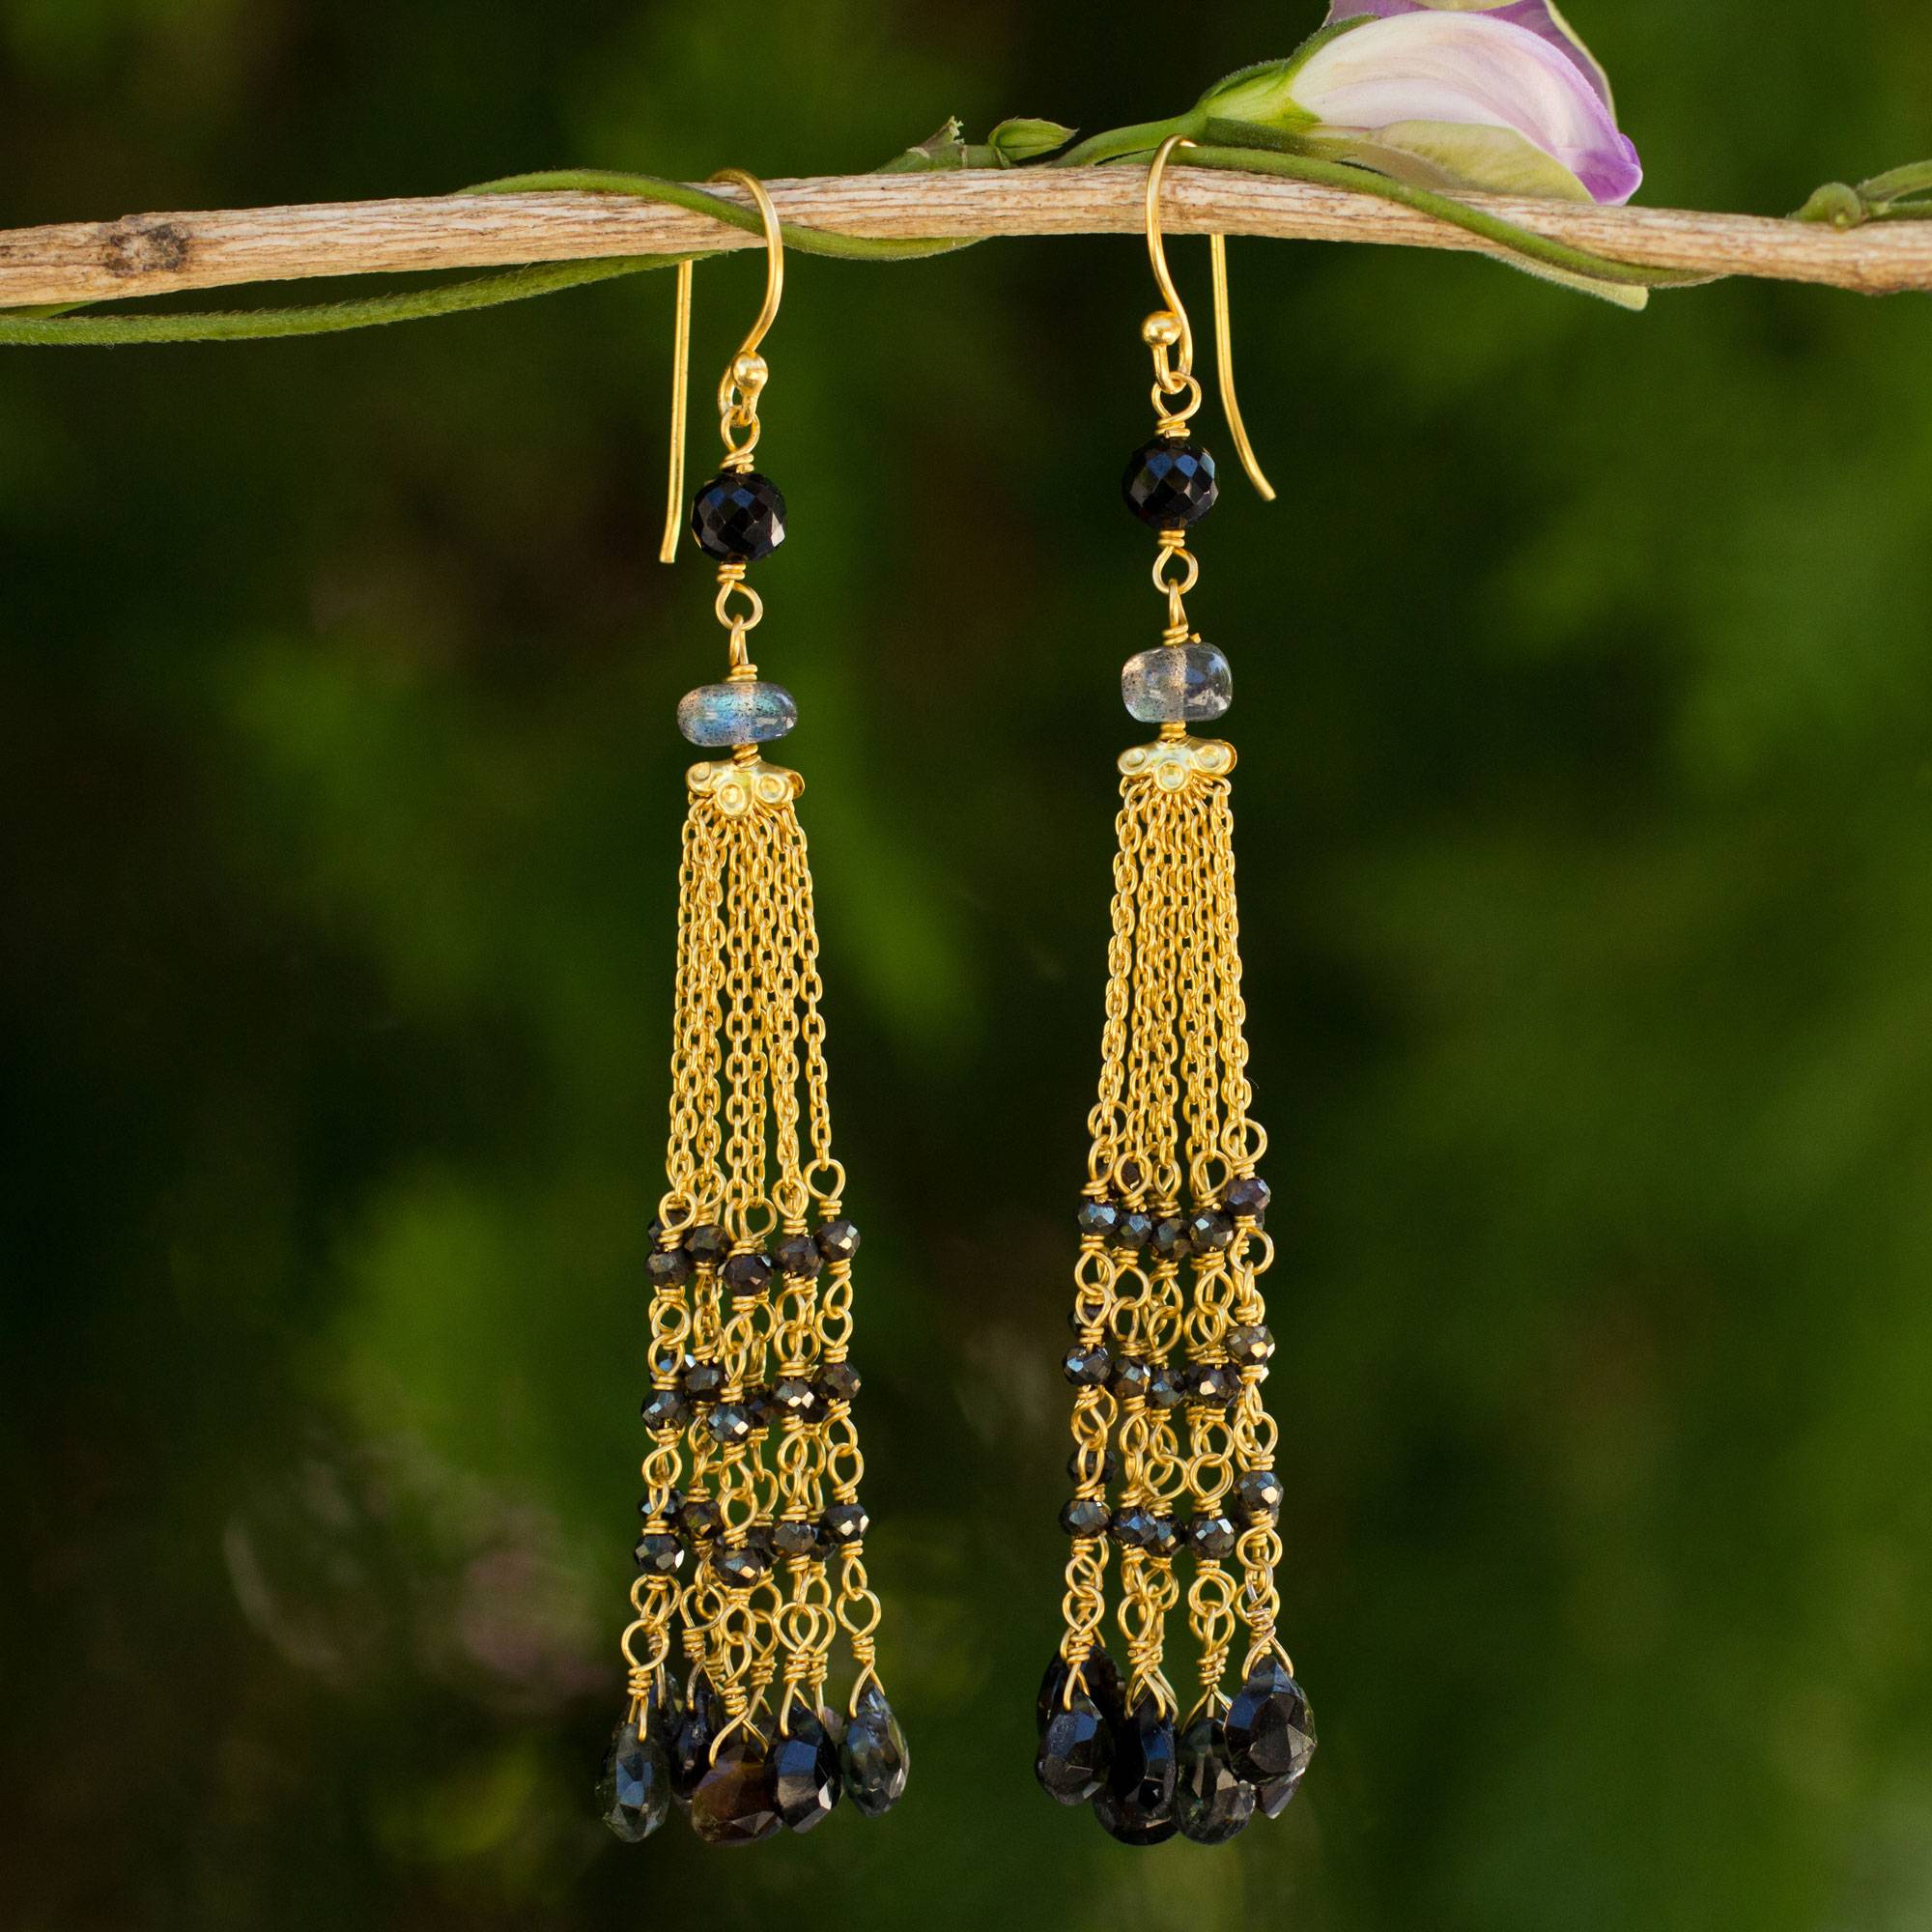 b2ed14e3f269e Gold Plated Earrings with Labradorite Tourmaline and Spinel, 'Elysian  Cascade'